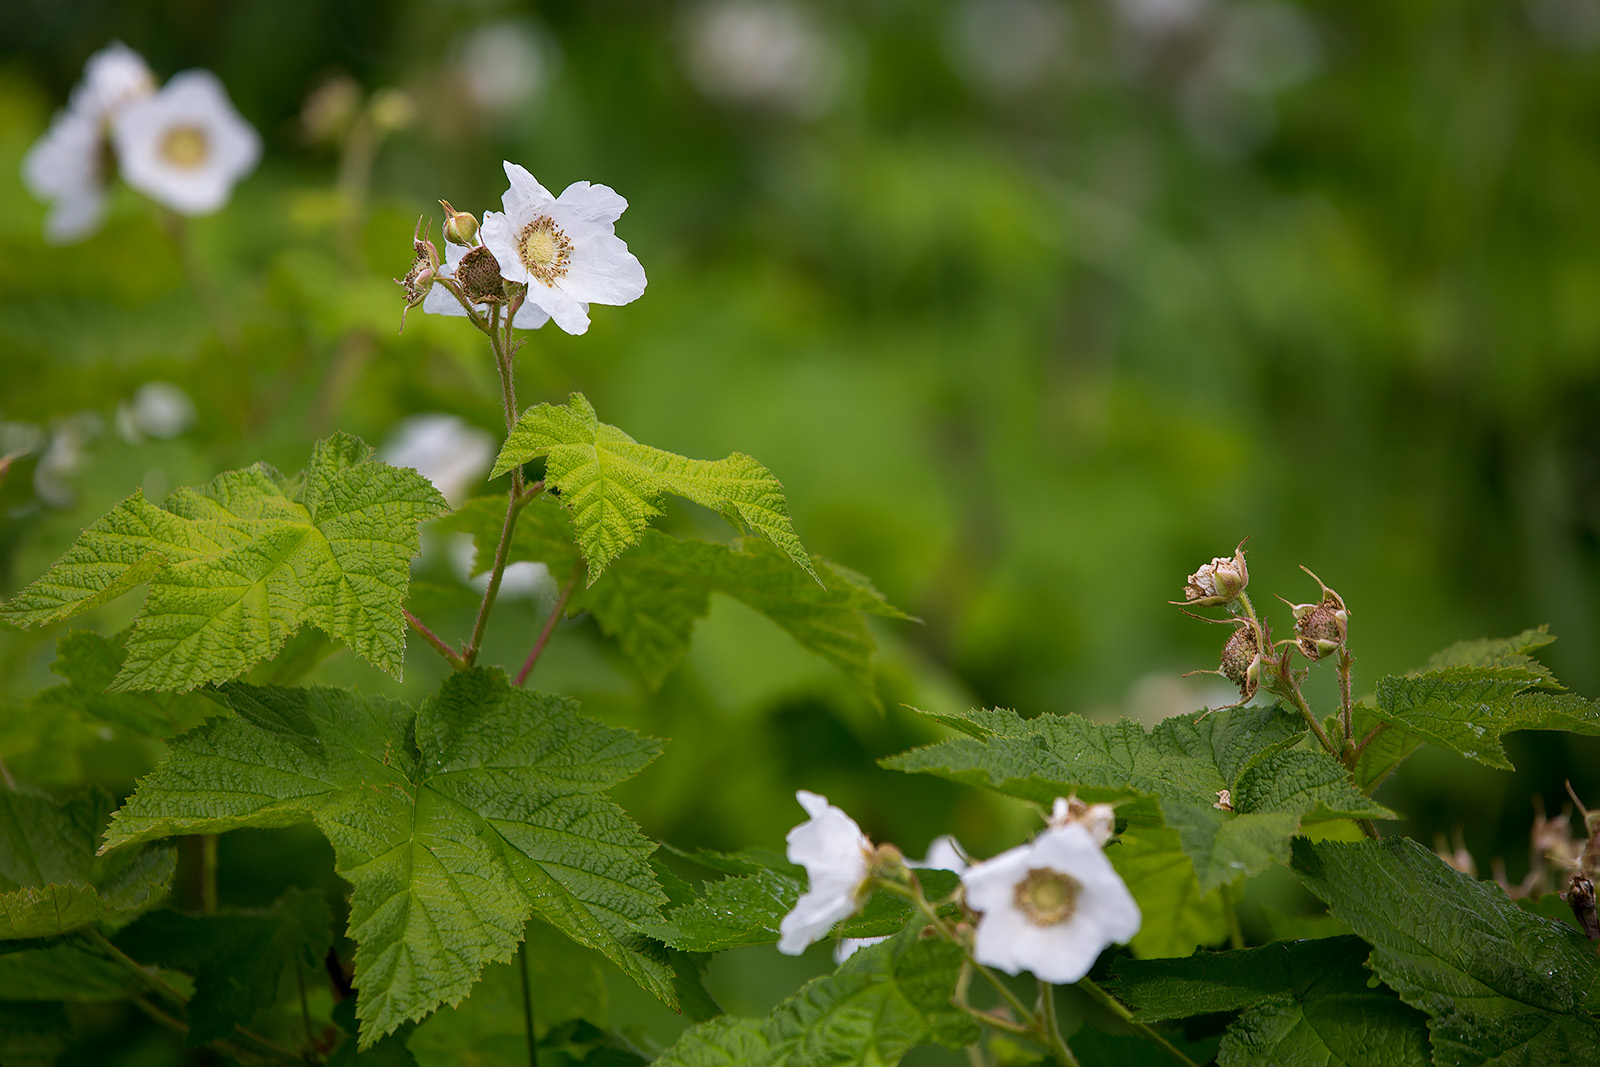 The flowers of Rubus nutkanus